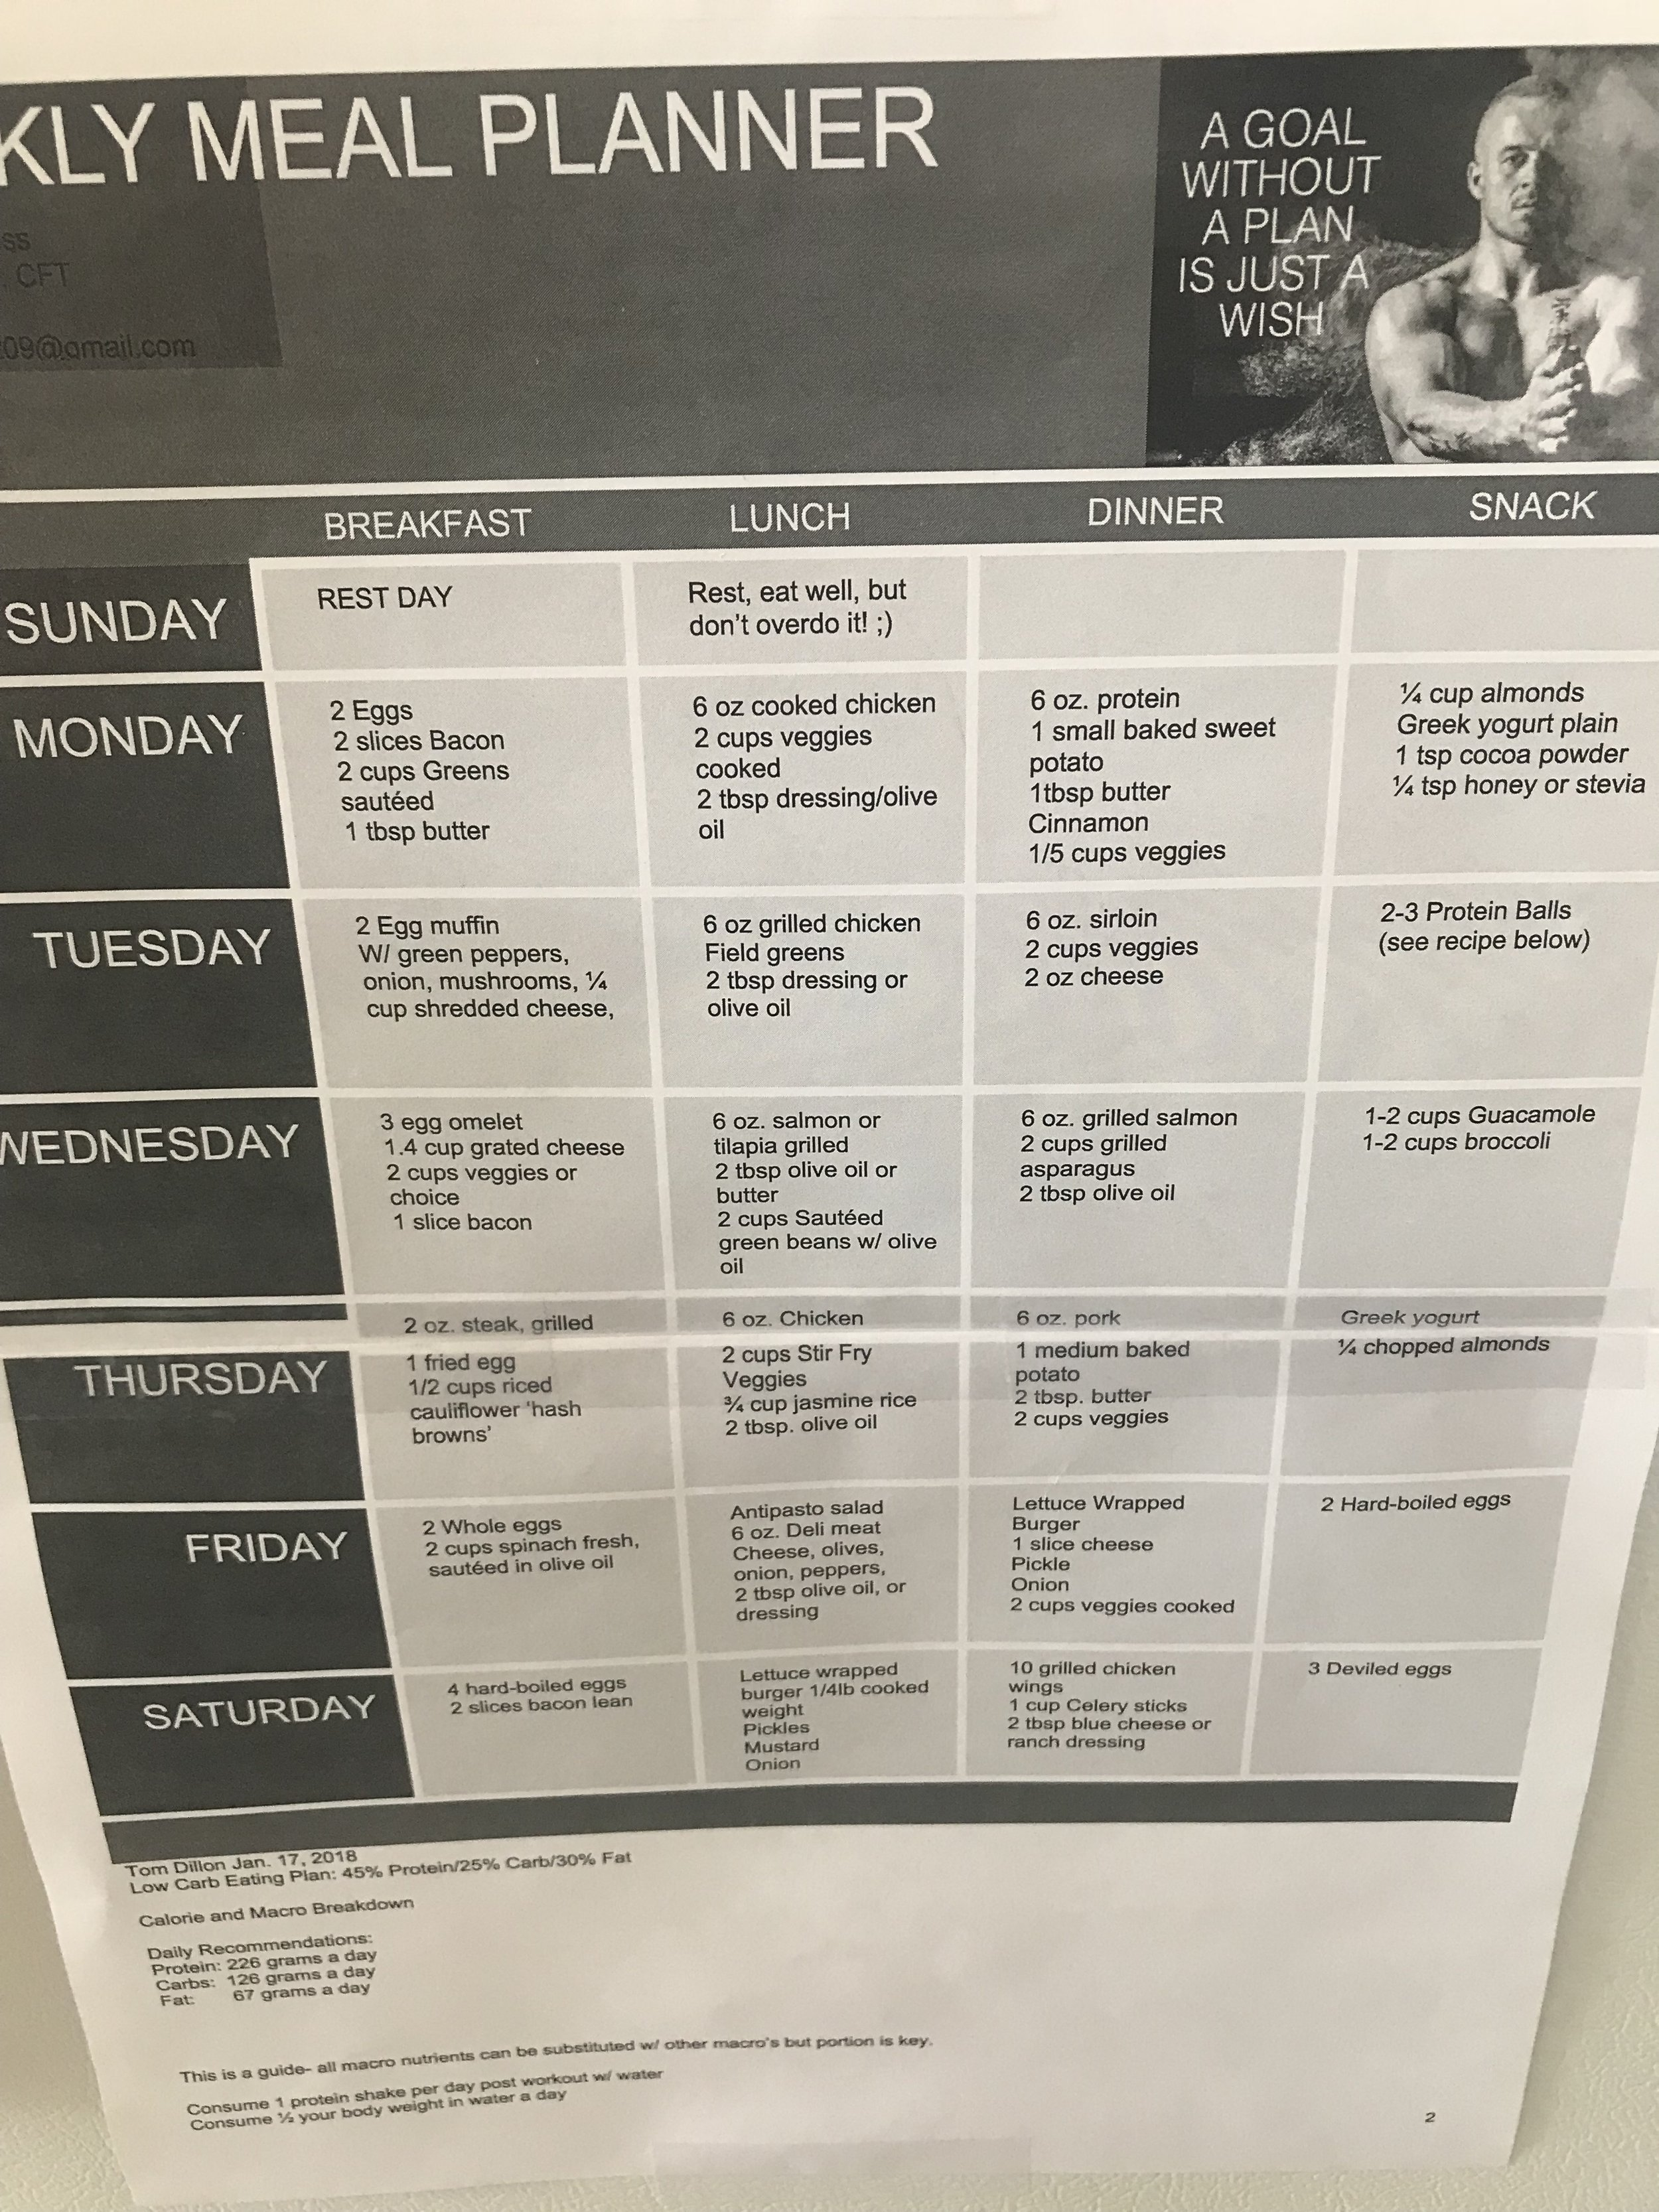 My healthy eating plan. Simple and effective. This plan was designed specifically for ME and MY goals. I would not suggest for anyone to follow this plan without working out or if they have other goals in mind.